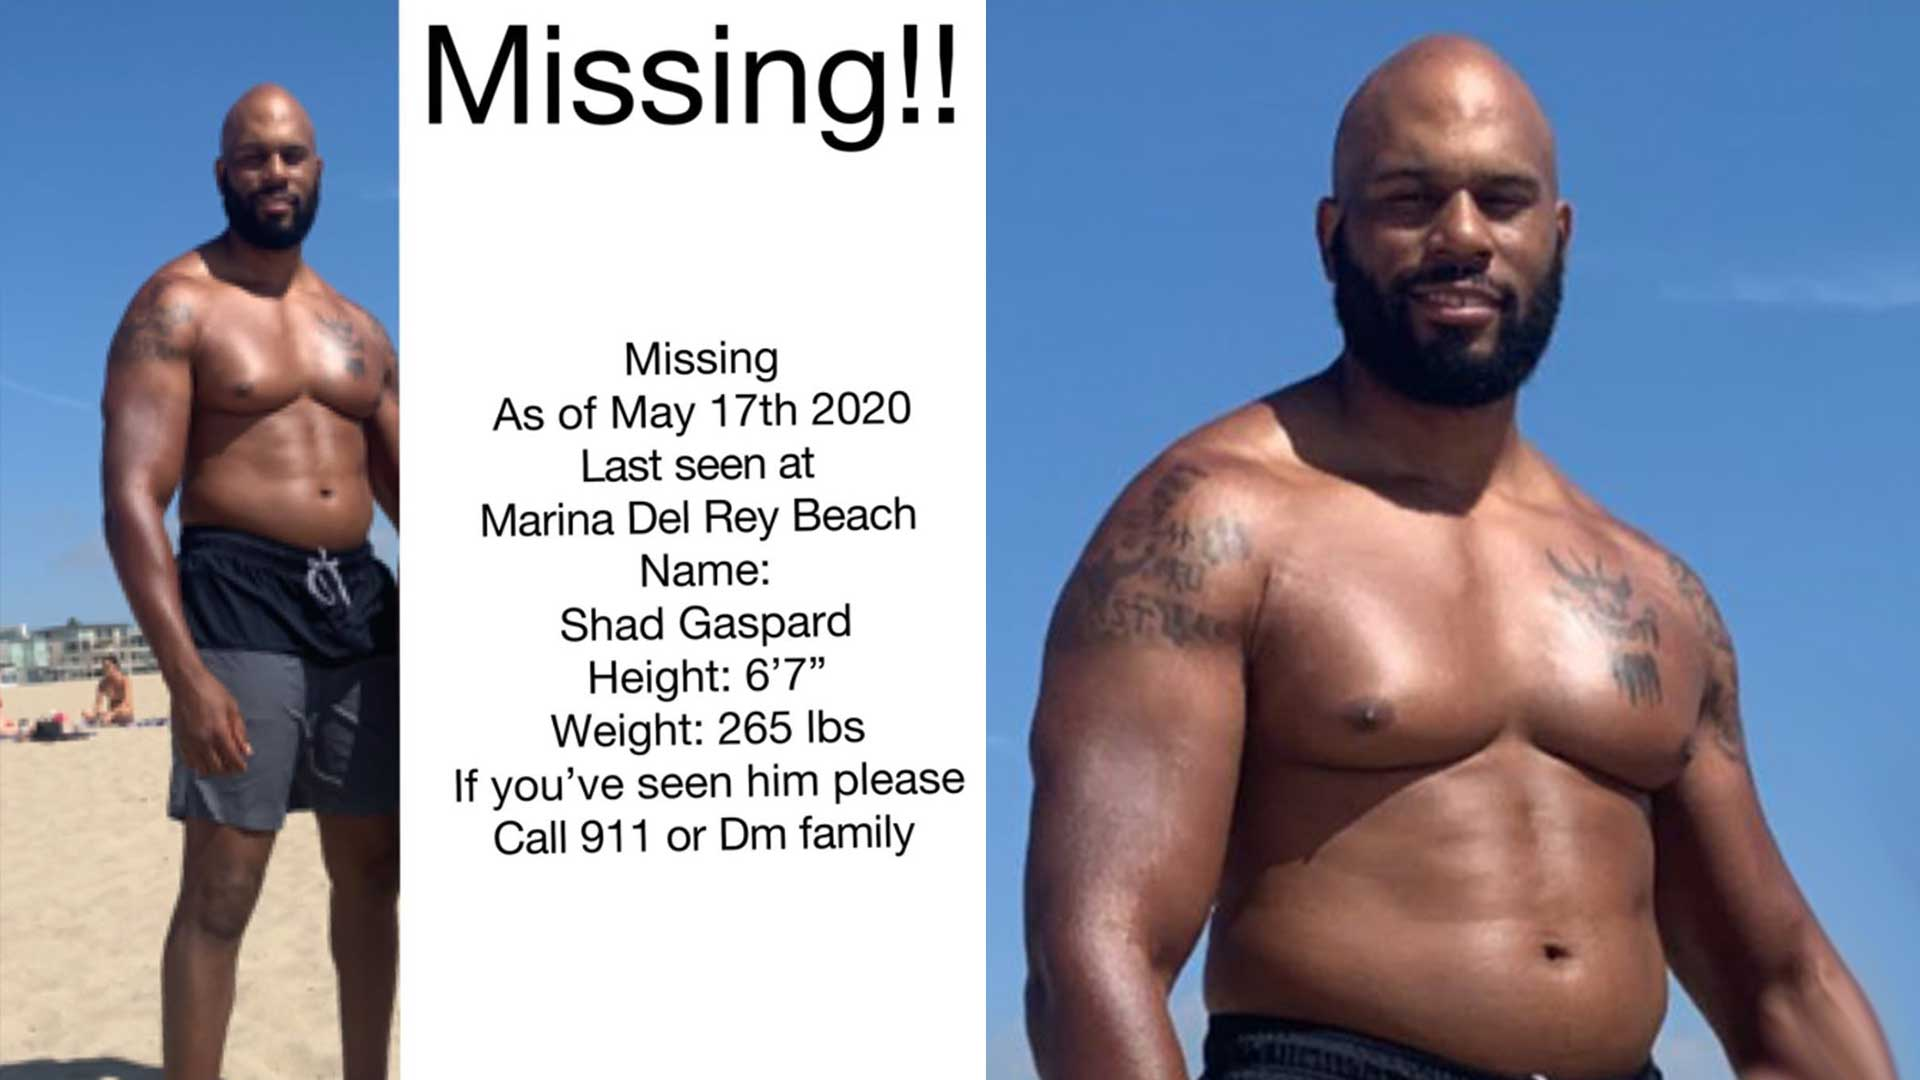 Near the Venice Beach, Shad Gaspard who is former WWE superstar goes missing